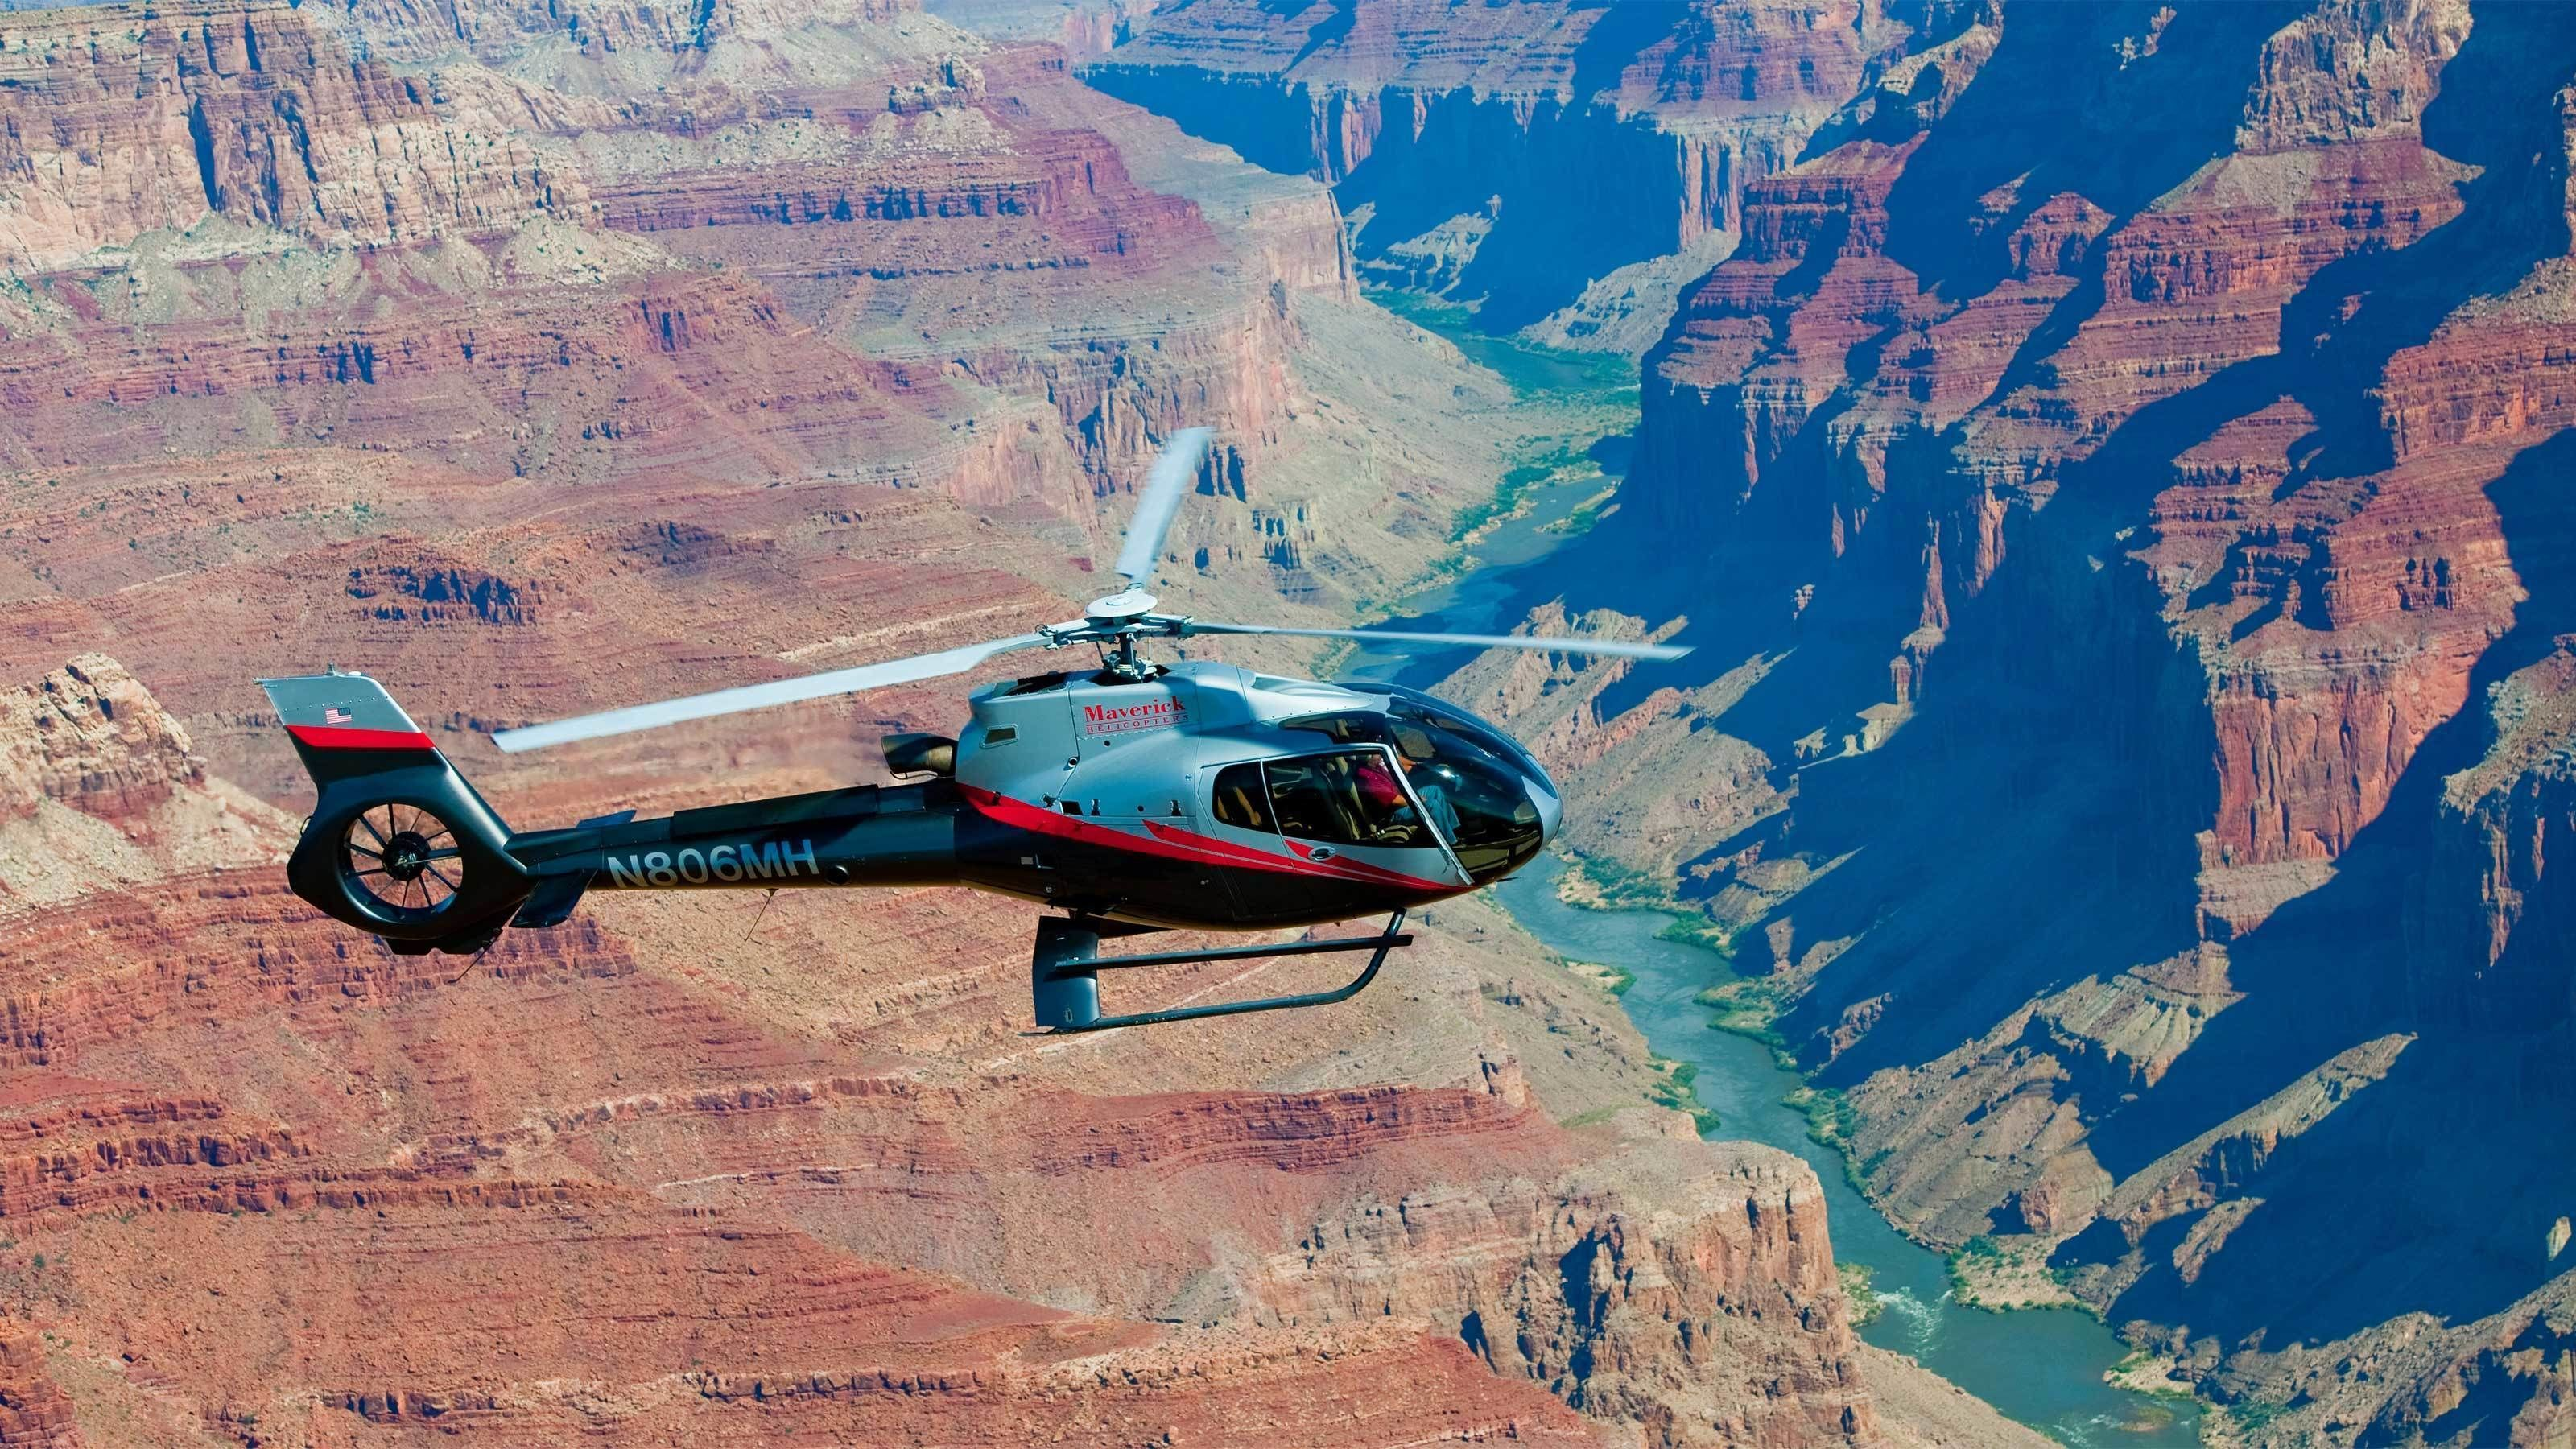 Helicopter flying above the Grand Canyon during the day